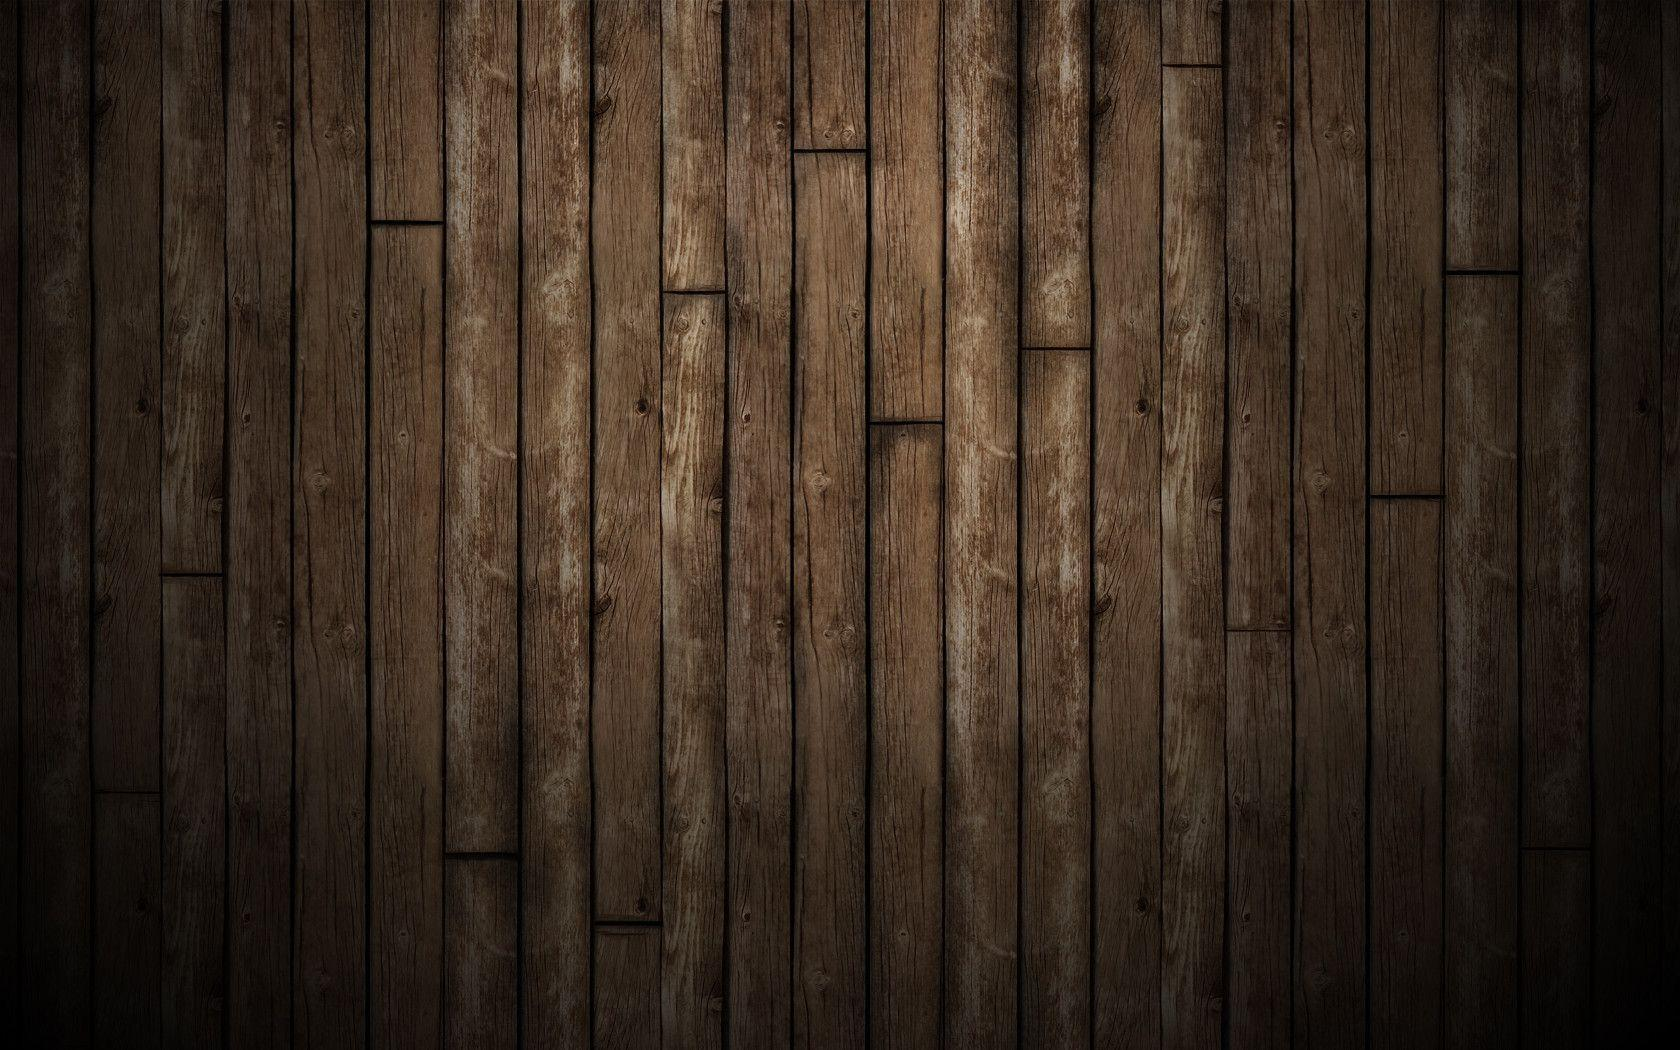 Wood HD Wallpapers